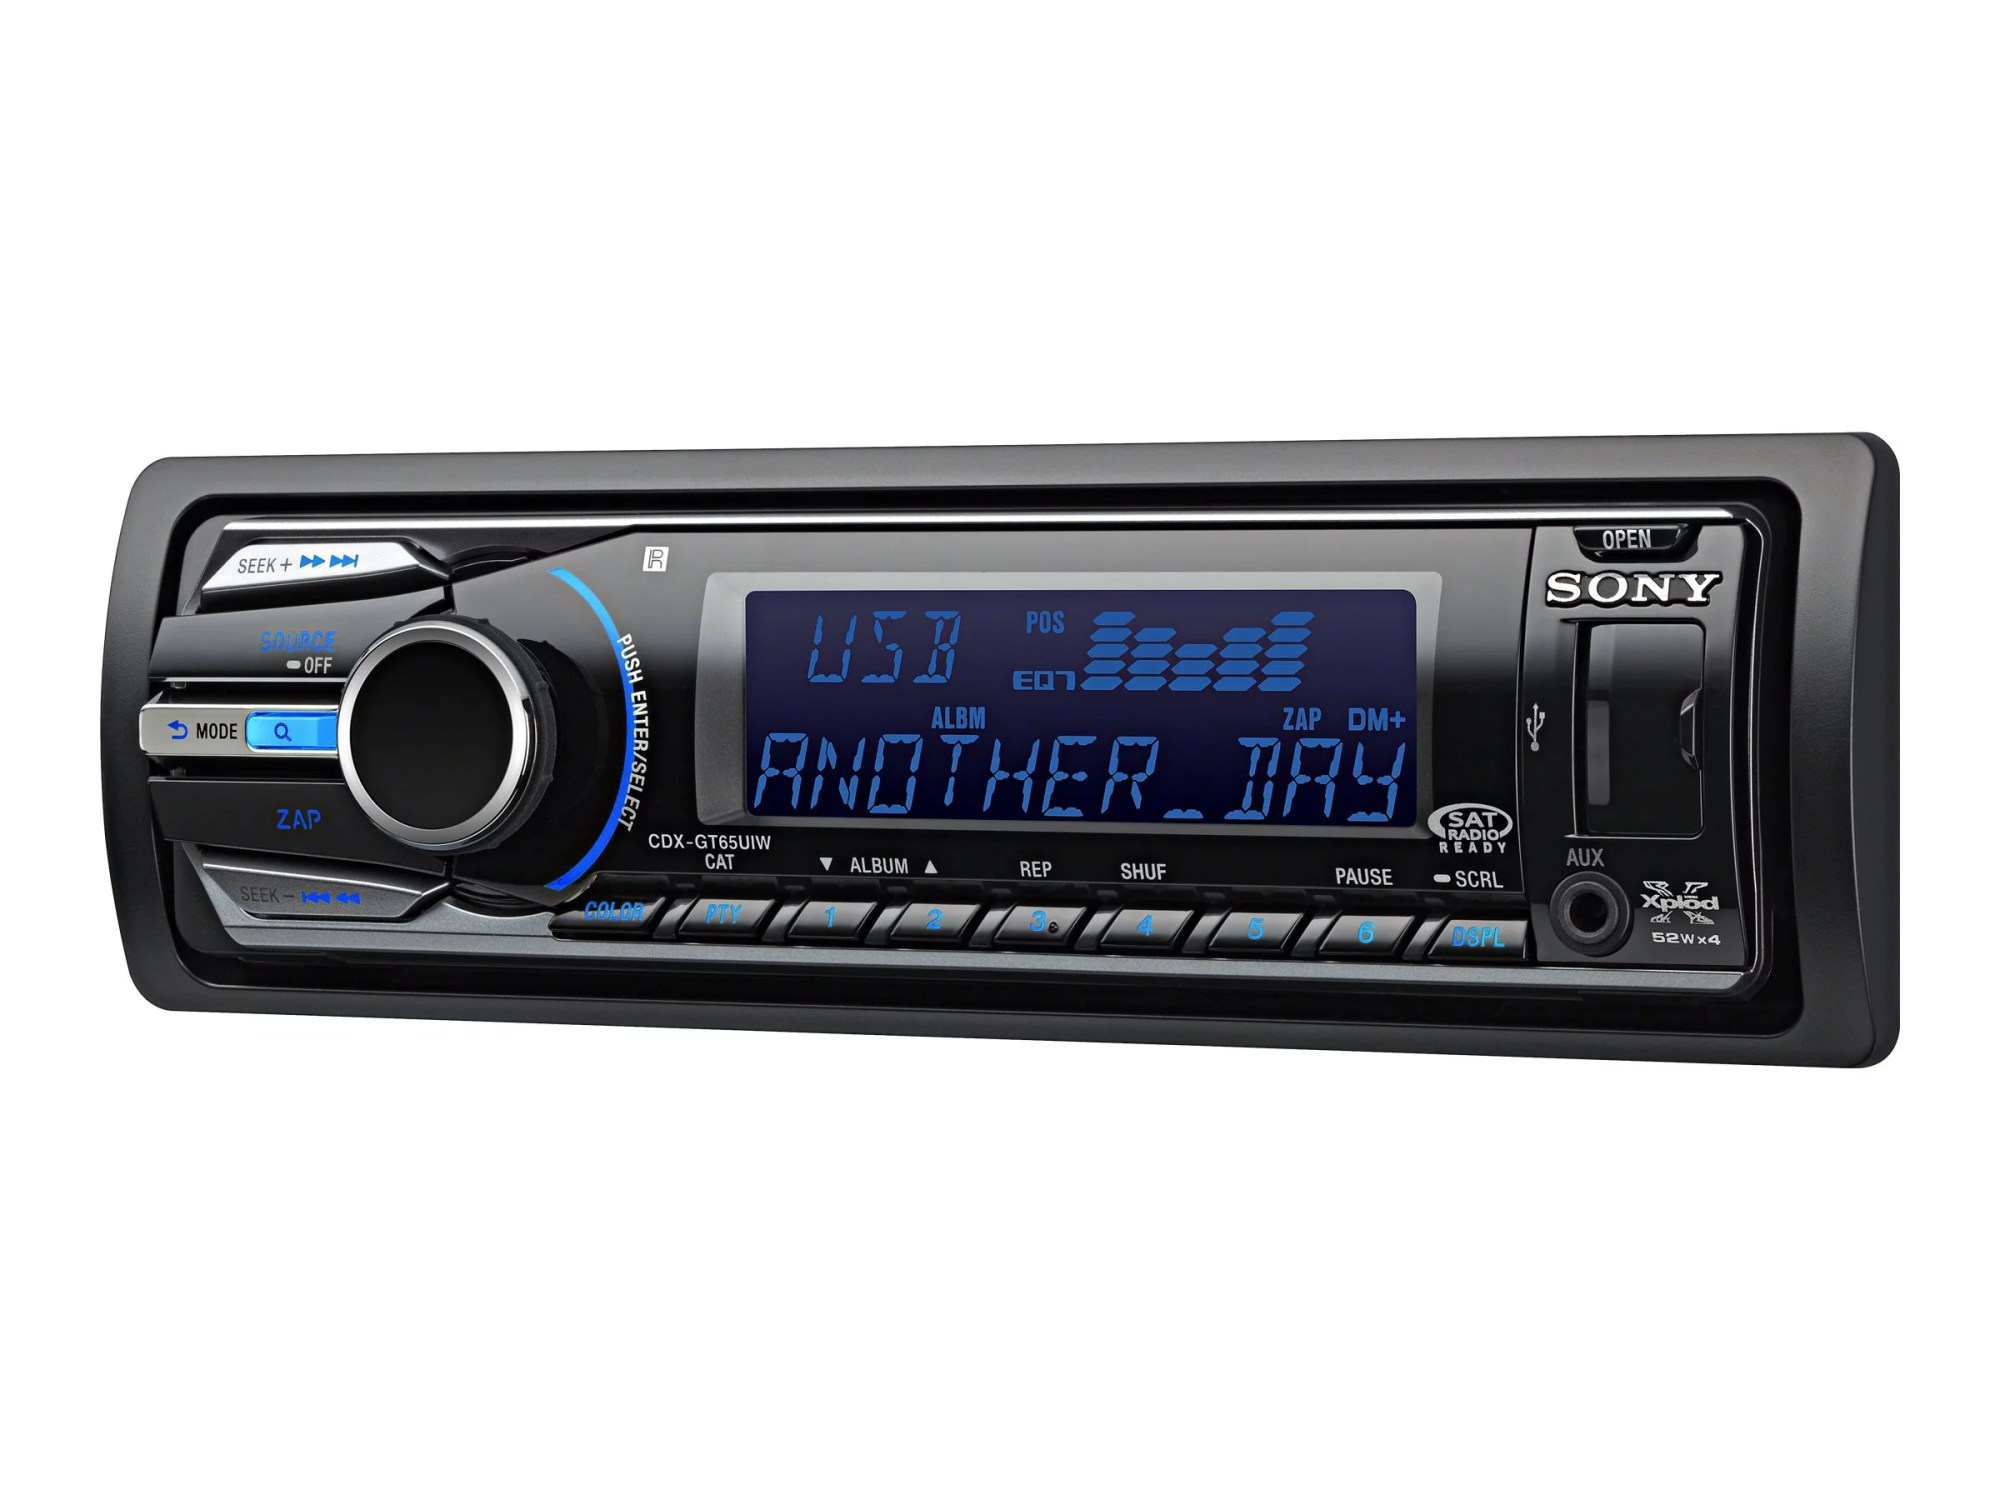 hight resolution of sony xplod cdx gt65uiw car cd receiver with usb 1 wire and dynamic color illuminator walmart com